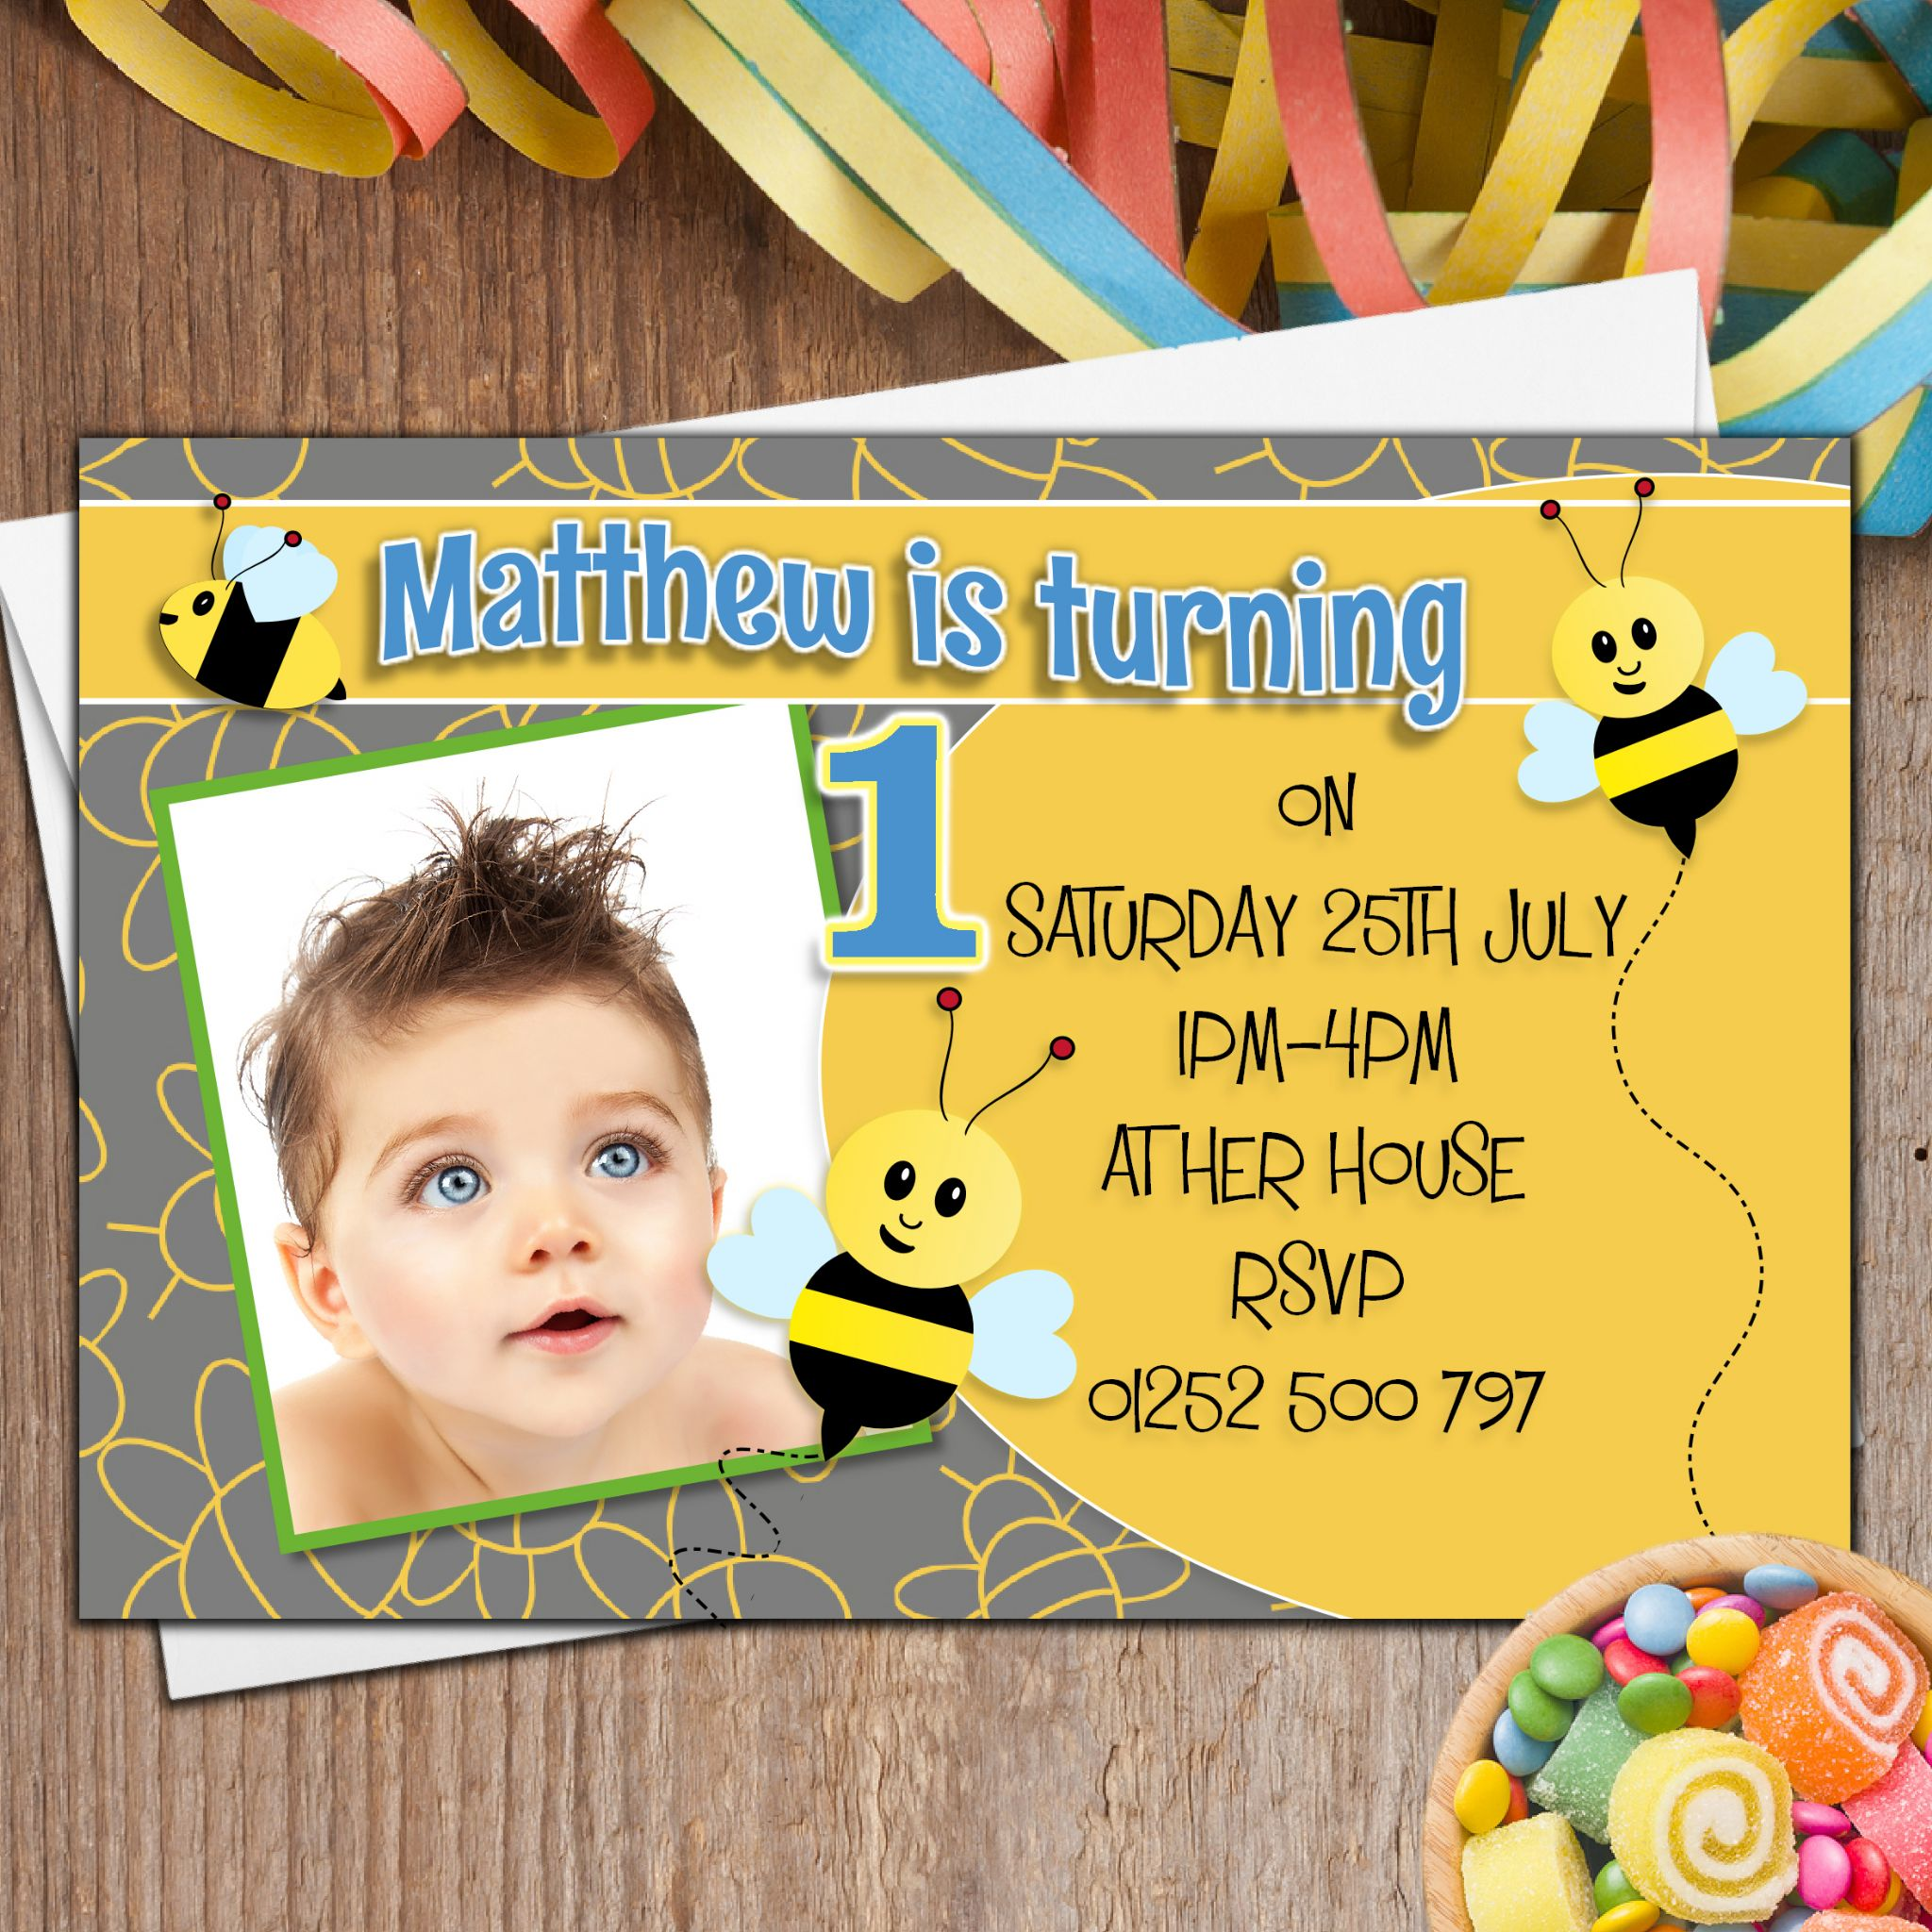 10 Personalised Girls Boys Bumble Bee Birthday Party PHOTO Invitations N34